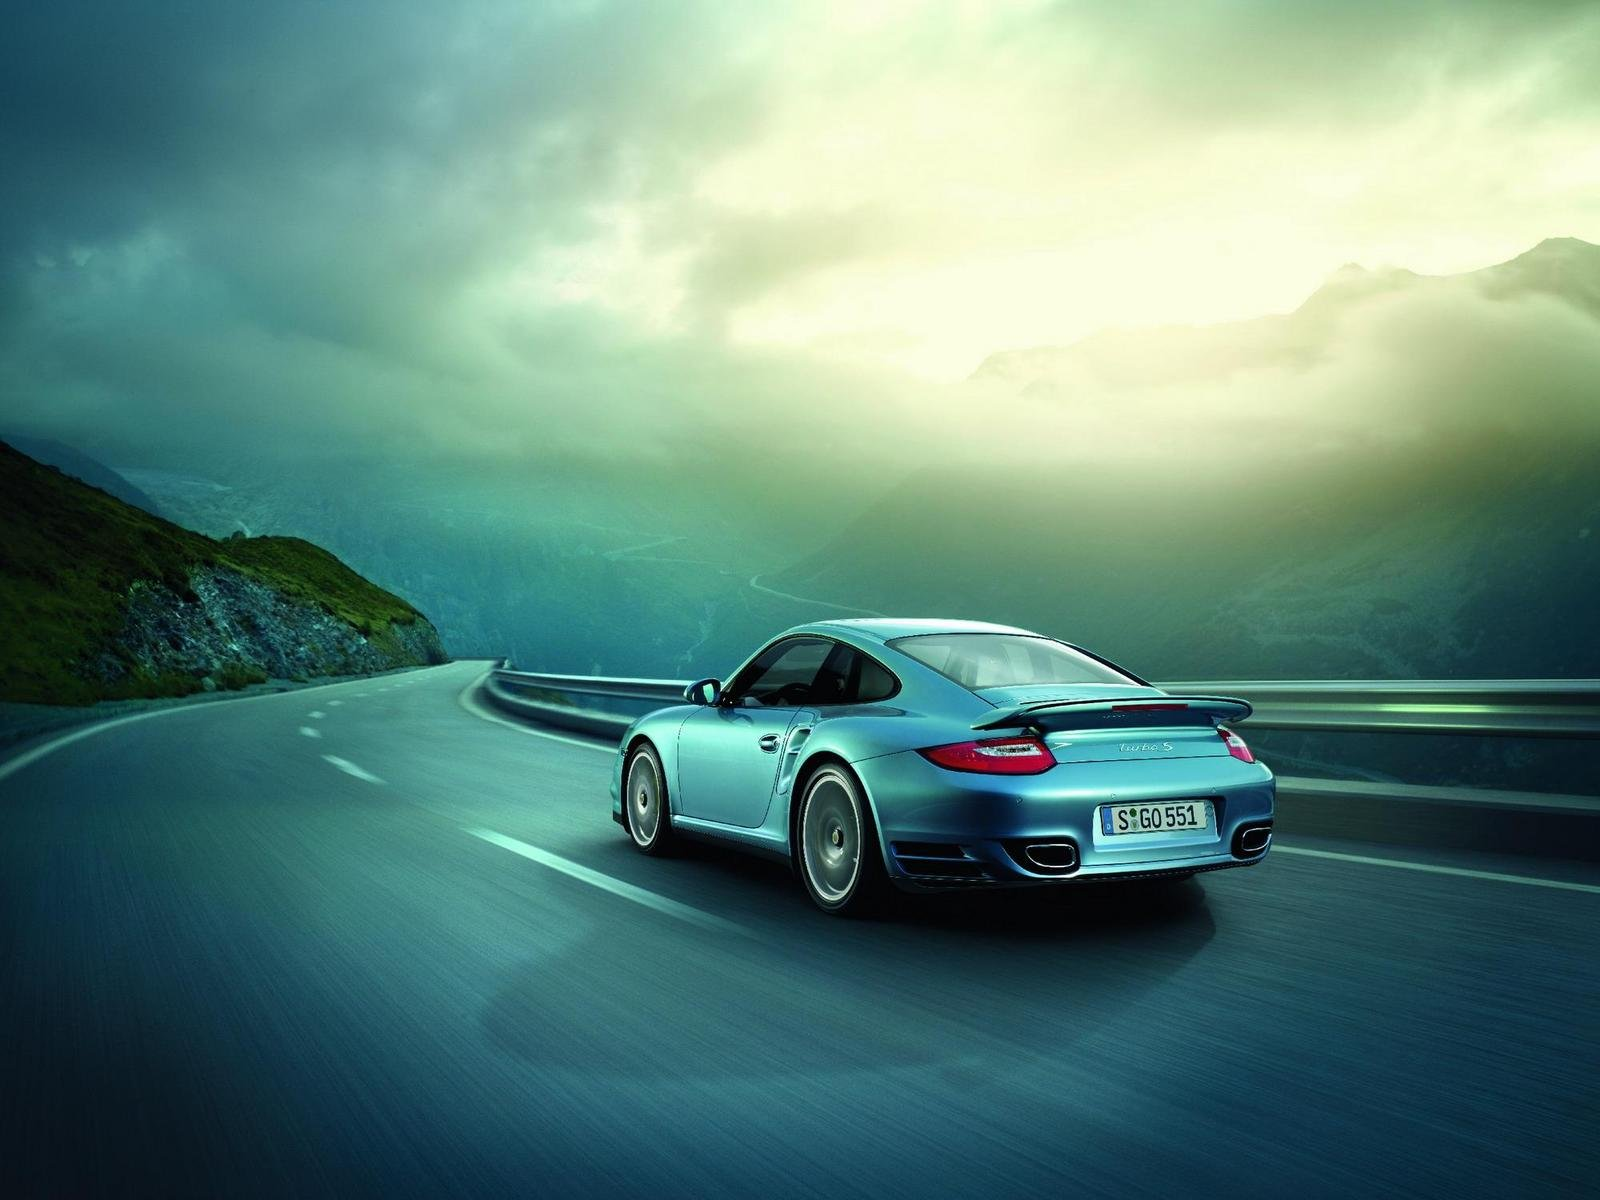 2011 porsche 911 turbo s picture 346152 car review top speed. Black Bedroom Furniture Sets. Home Design Ideas